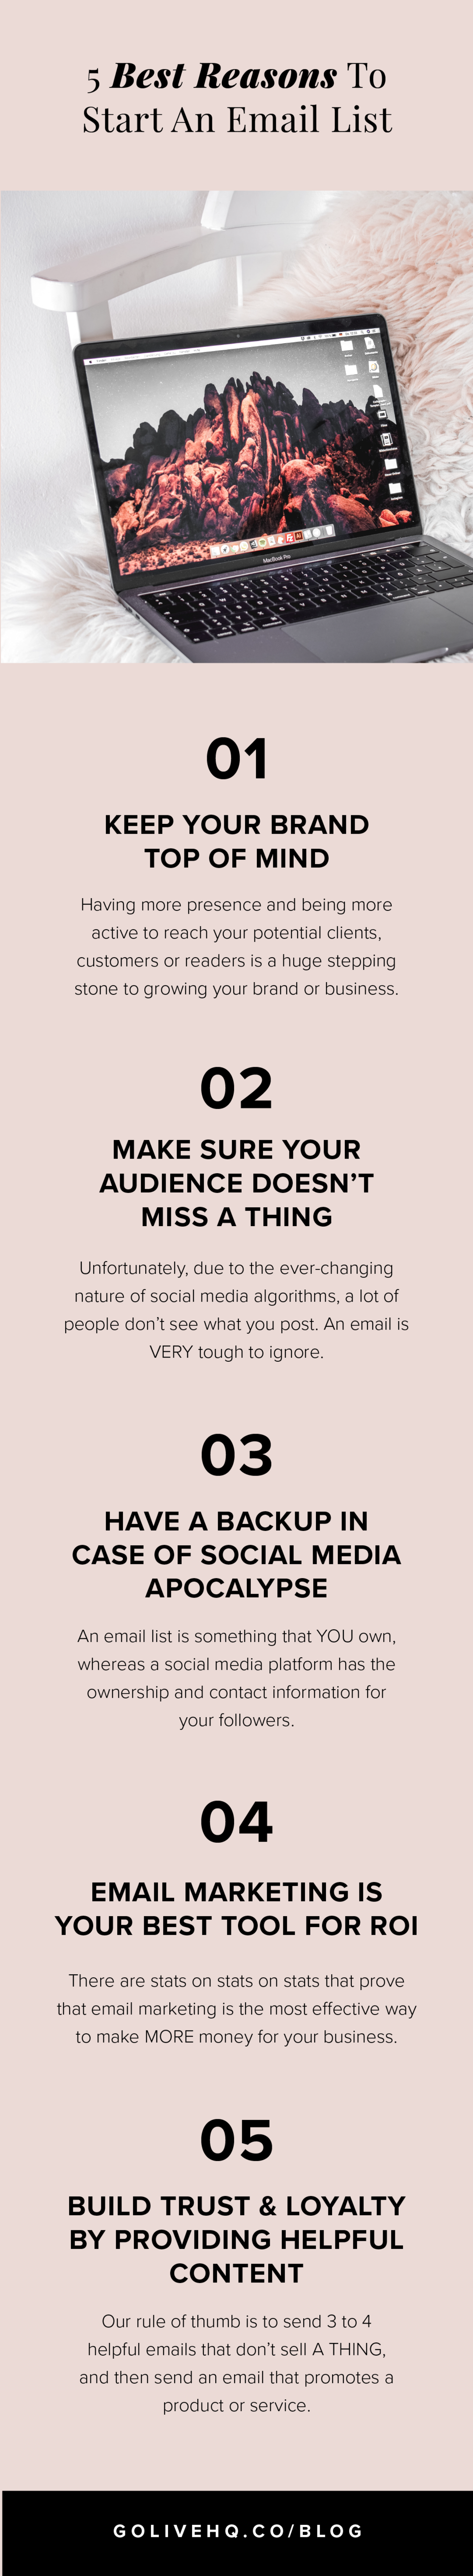 Our Best Reasons To Start An Email List | Go Live HQ